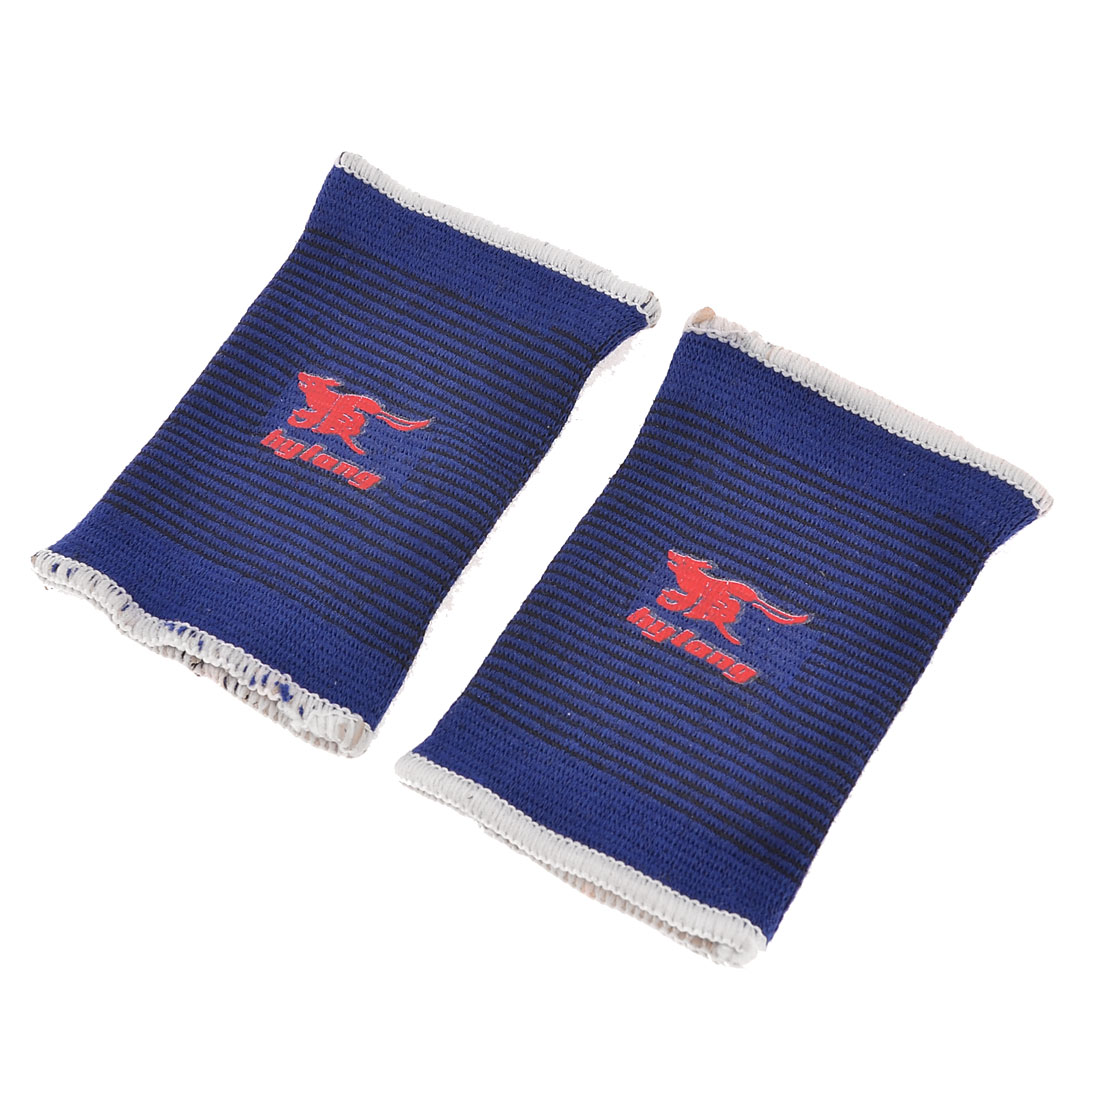 2 Pcs Basketball Tennis Elastic Wrist Brace Support Sweat Band Unisex